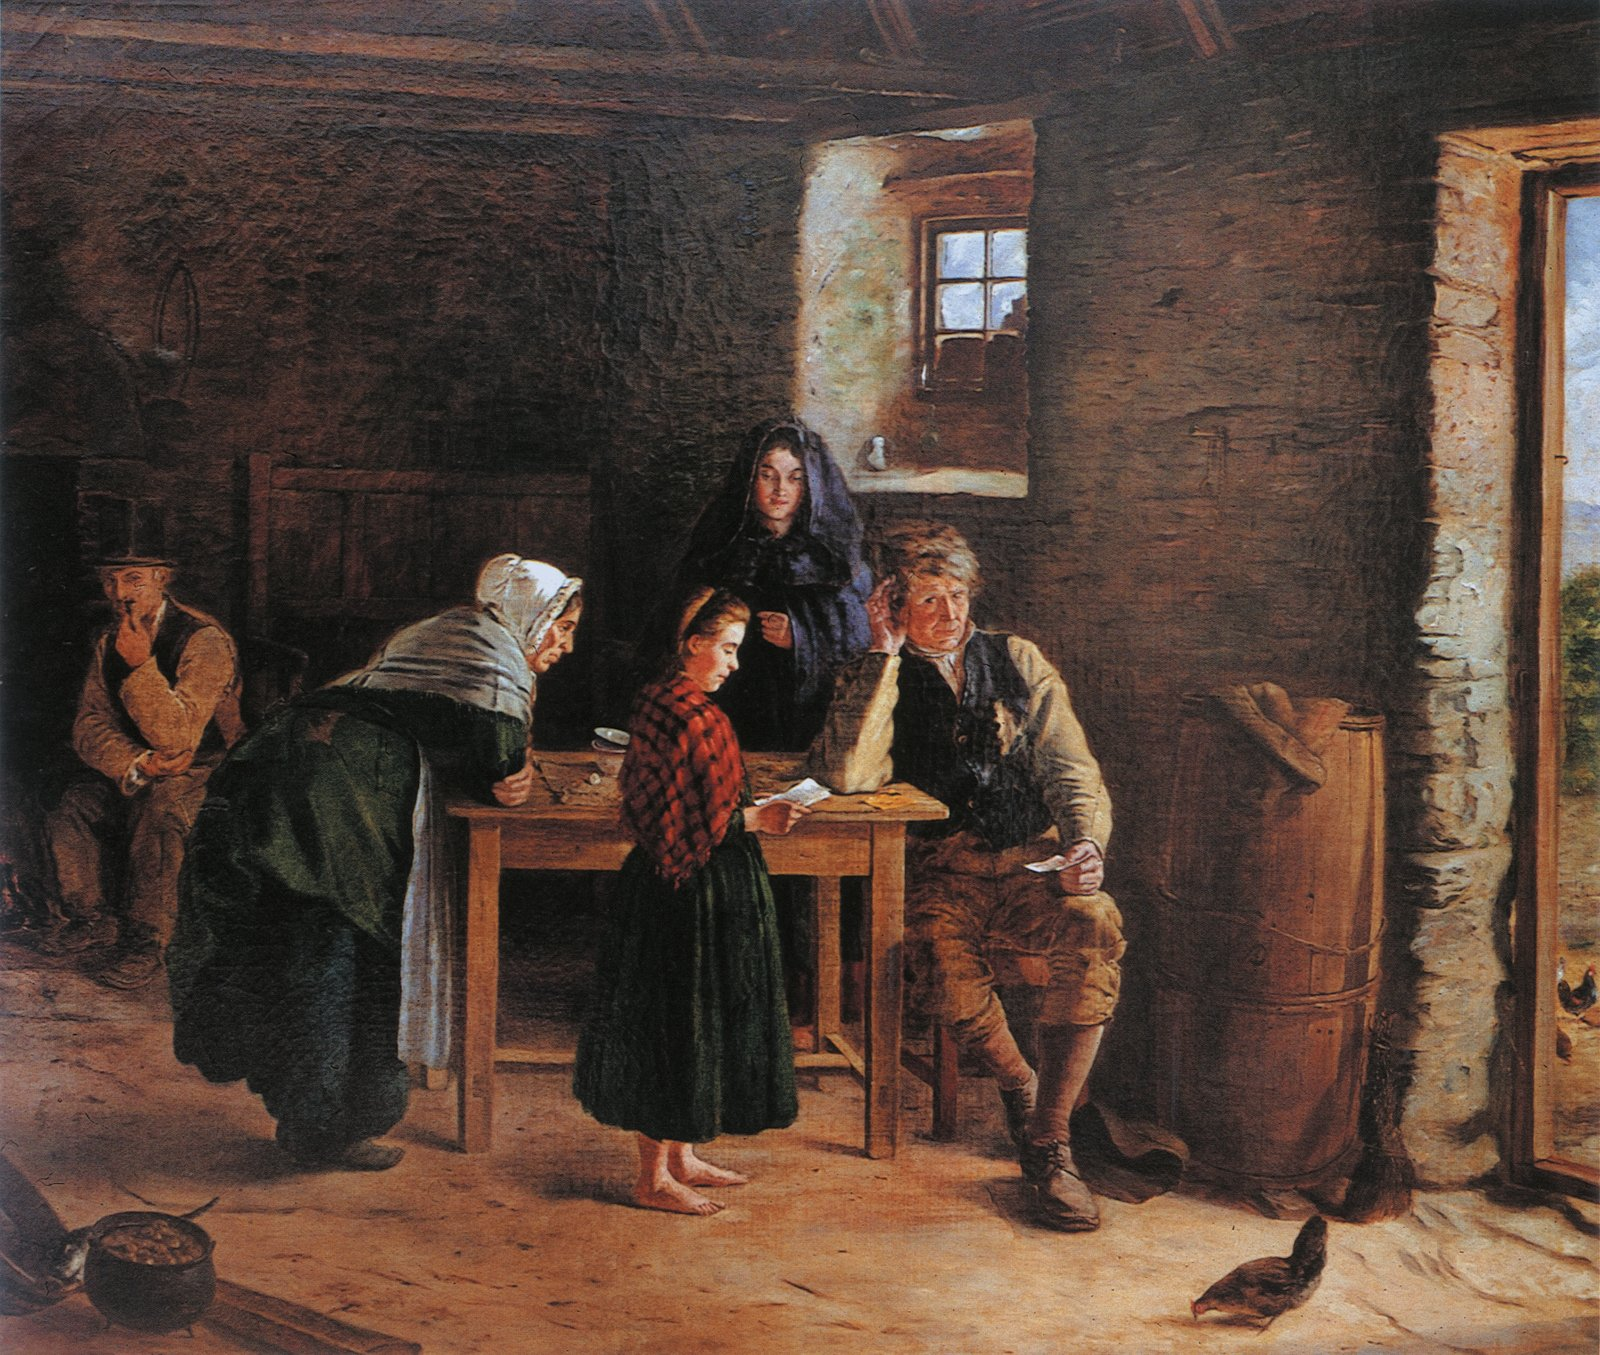 Image - Emigration to America continued to be a part of Irish life, as reflected in James Brenan's painting News from America (1875), oil on canvas. Image courtesy of Crawford Art Gallery, Cork.